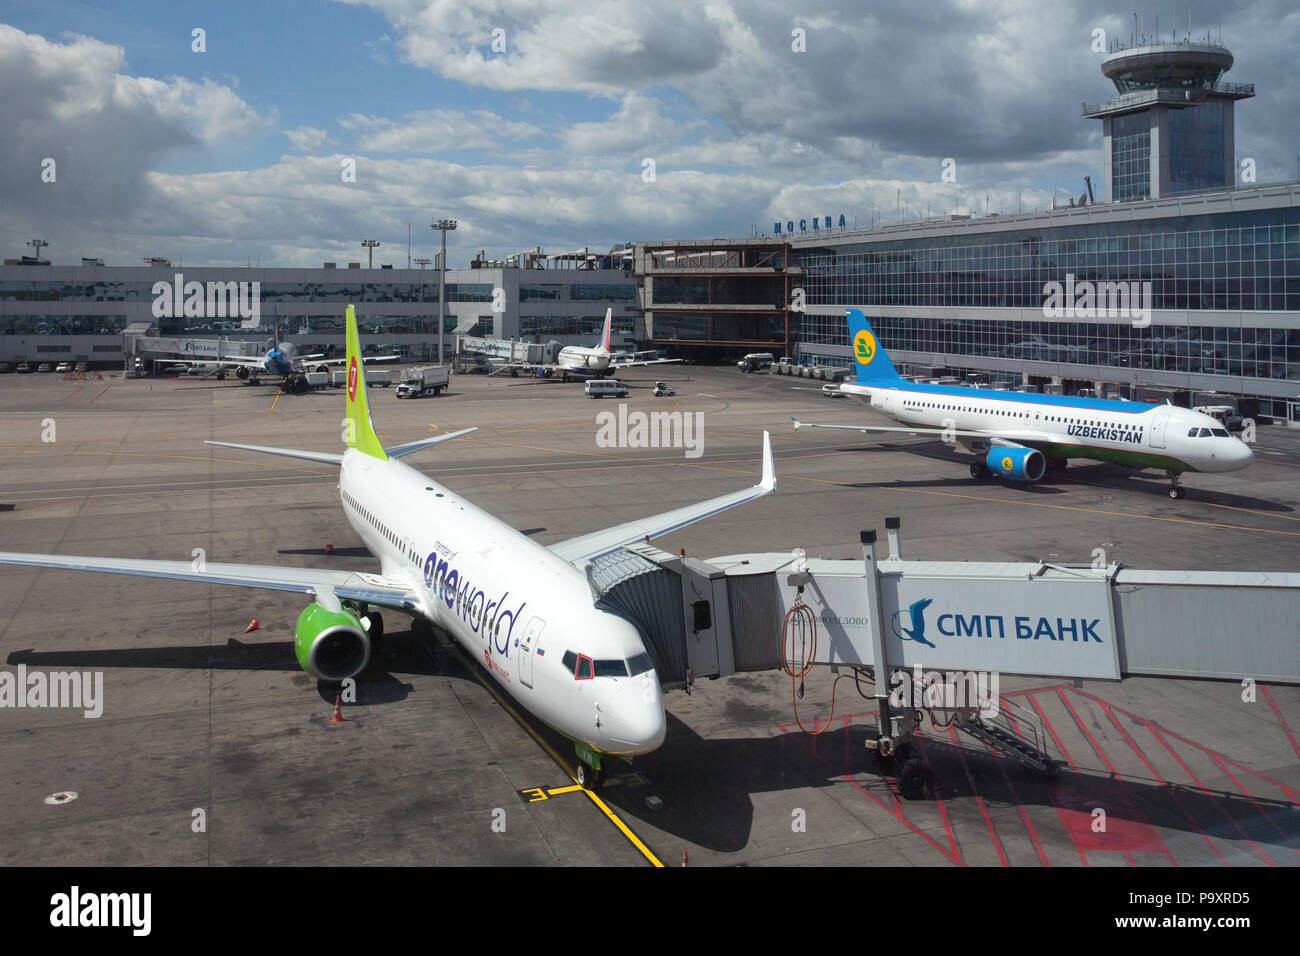 Civil jet aircrafts of S7 Airlines and Uzbekistan Airways at Domodedovo airport, Moscow, Russia - Stock Image